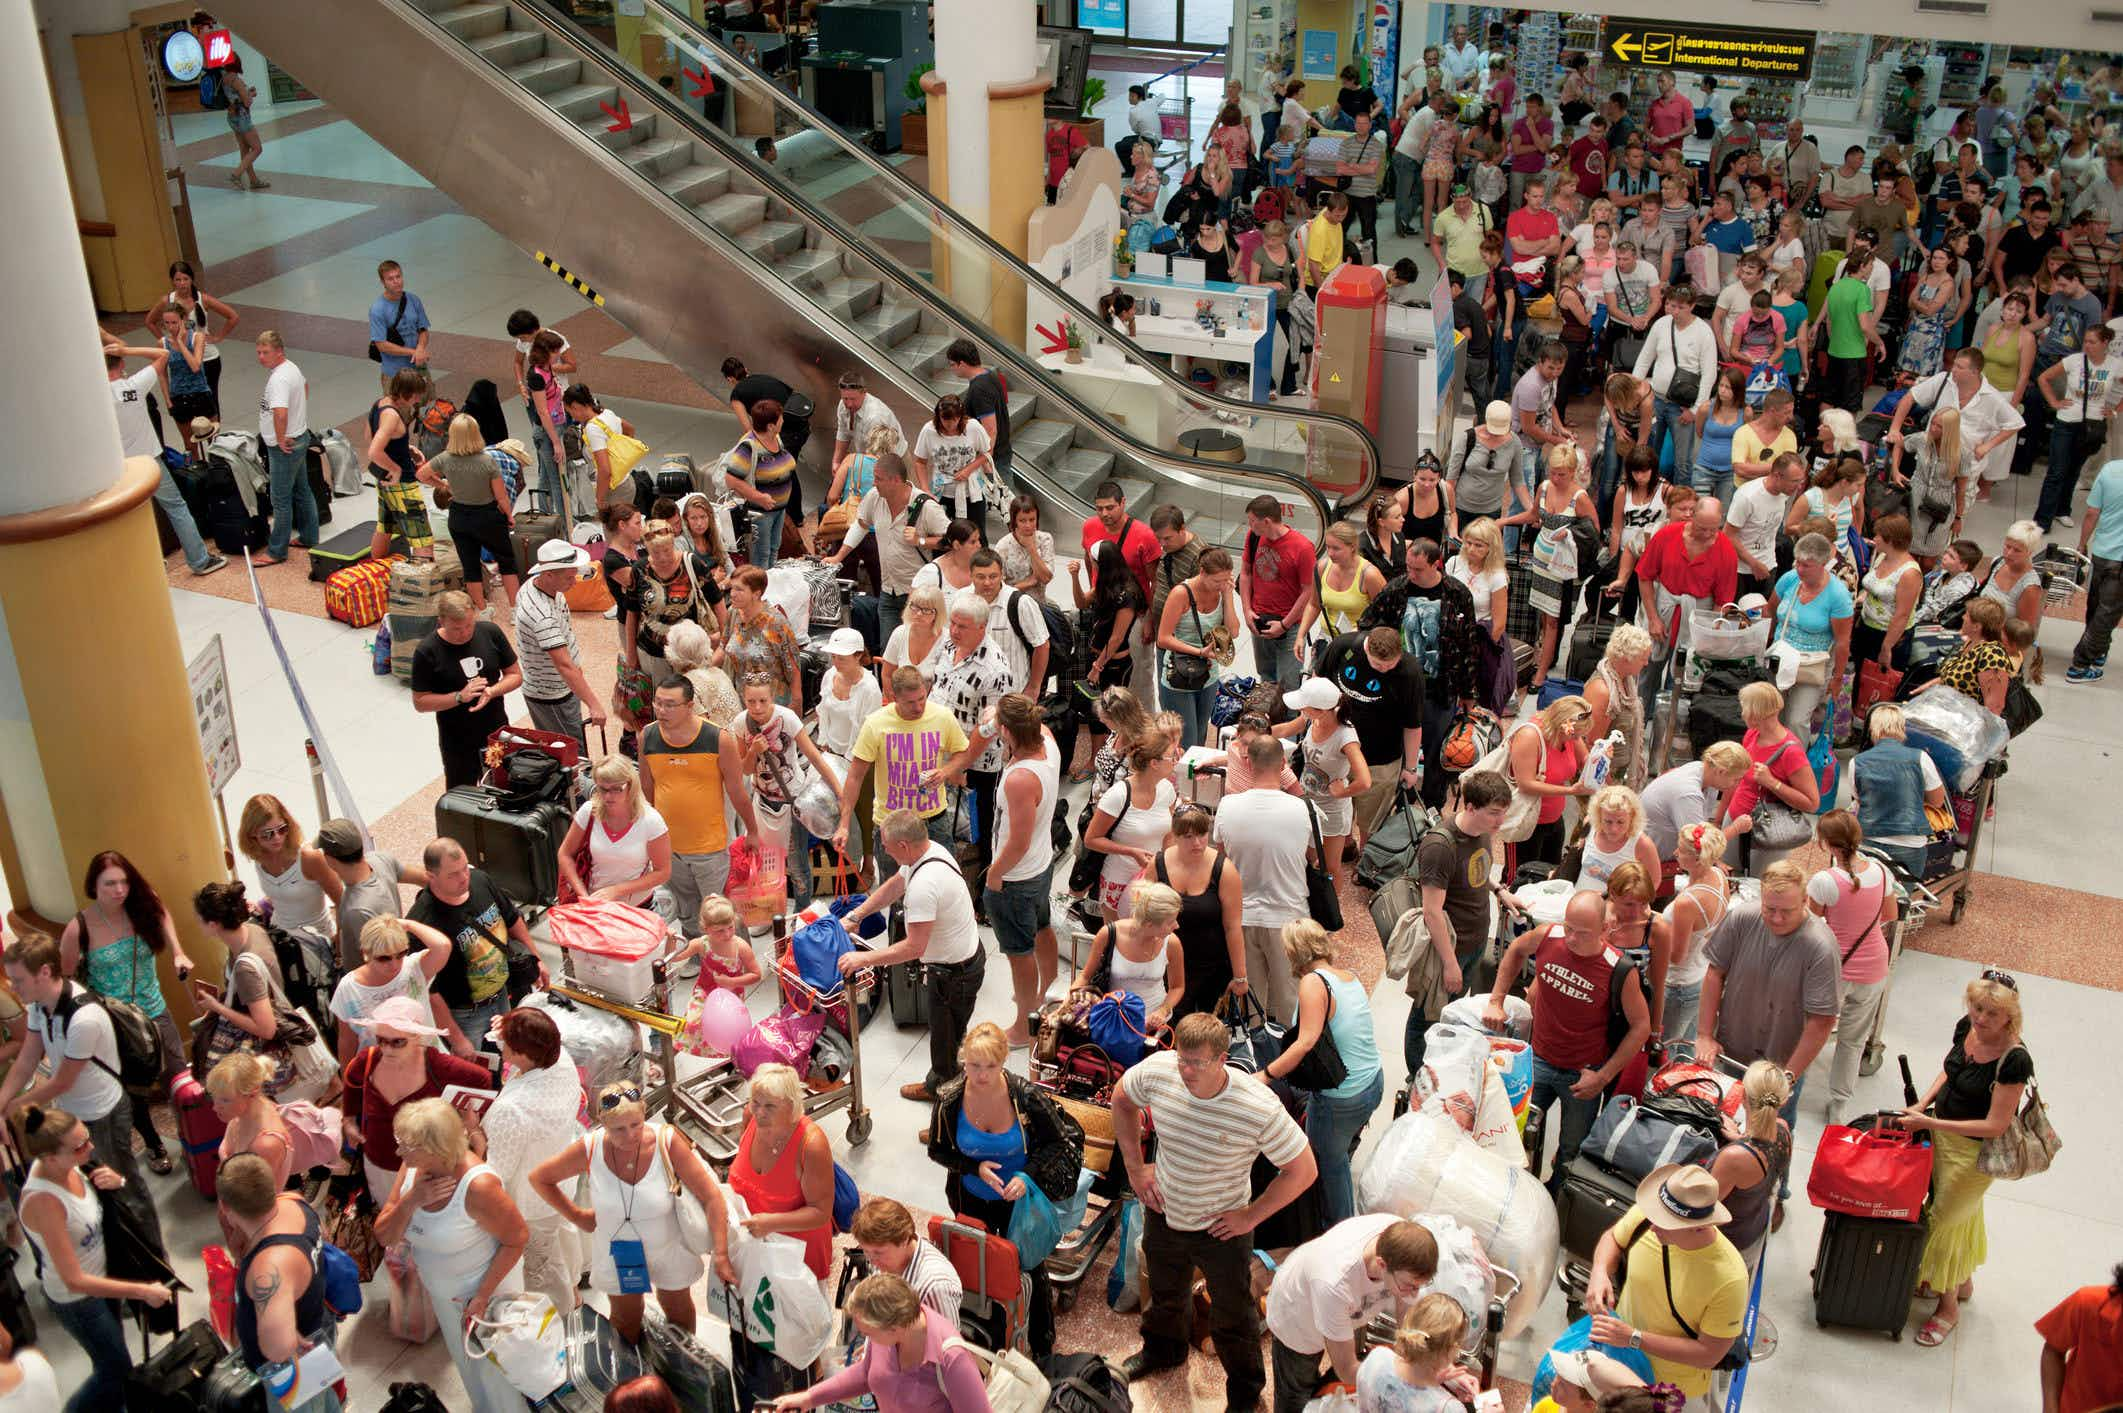 Here's how US travelers can avoid delays when flying this spring